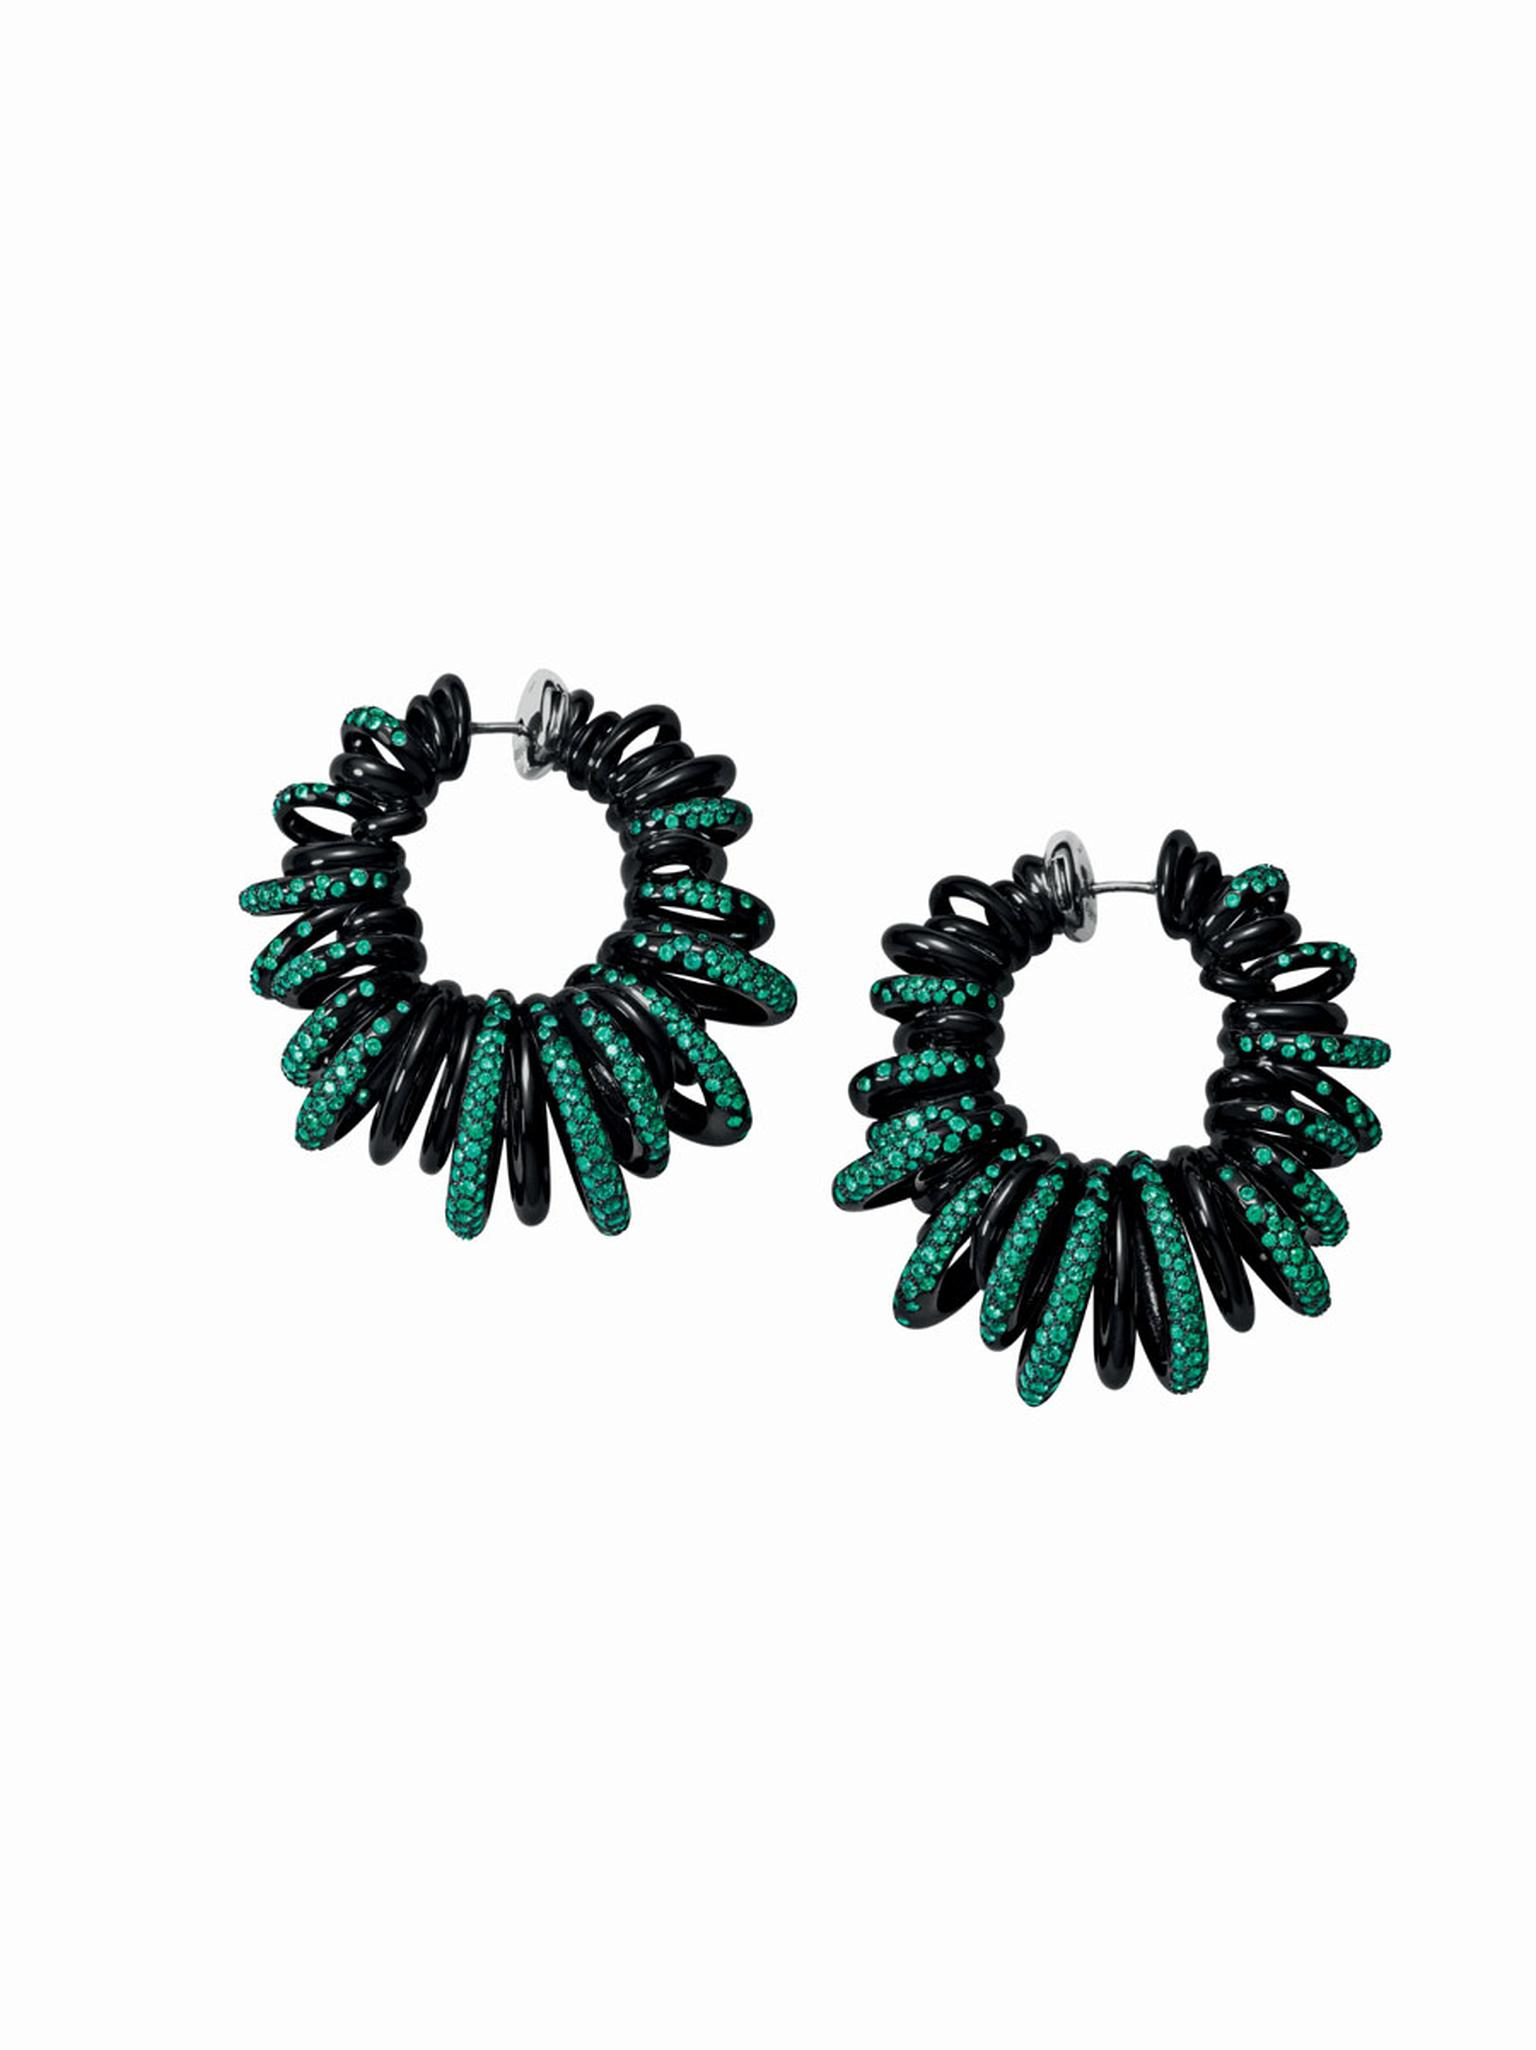 Sun-inspired earrings from de GRISOGONO's 'Sole' collection.